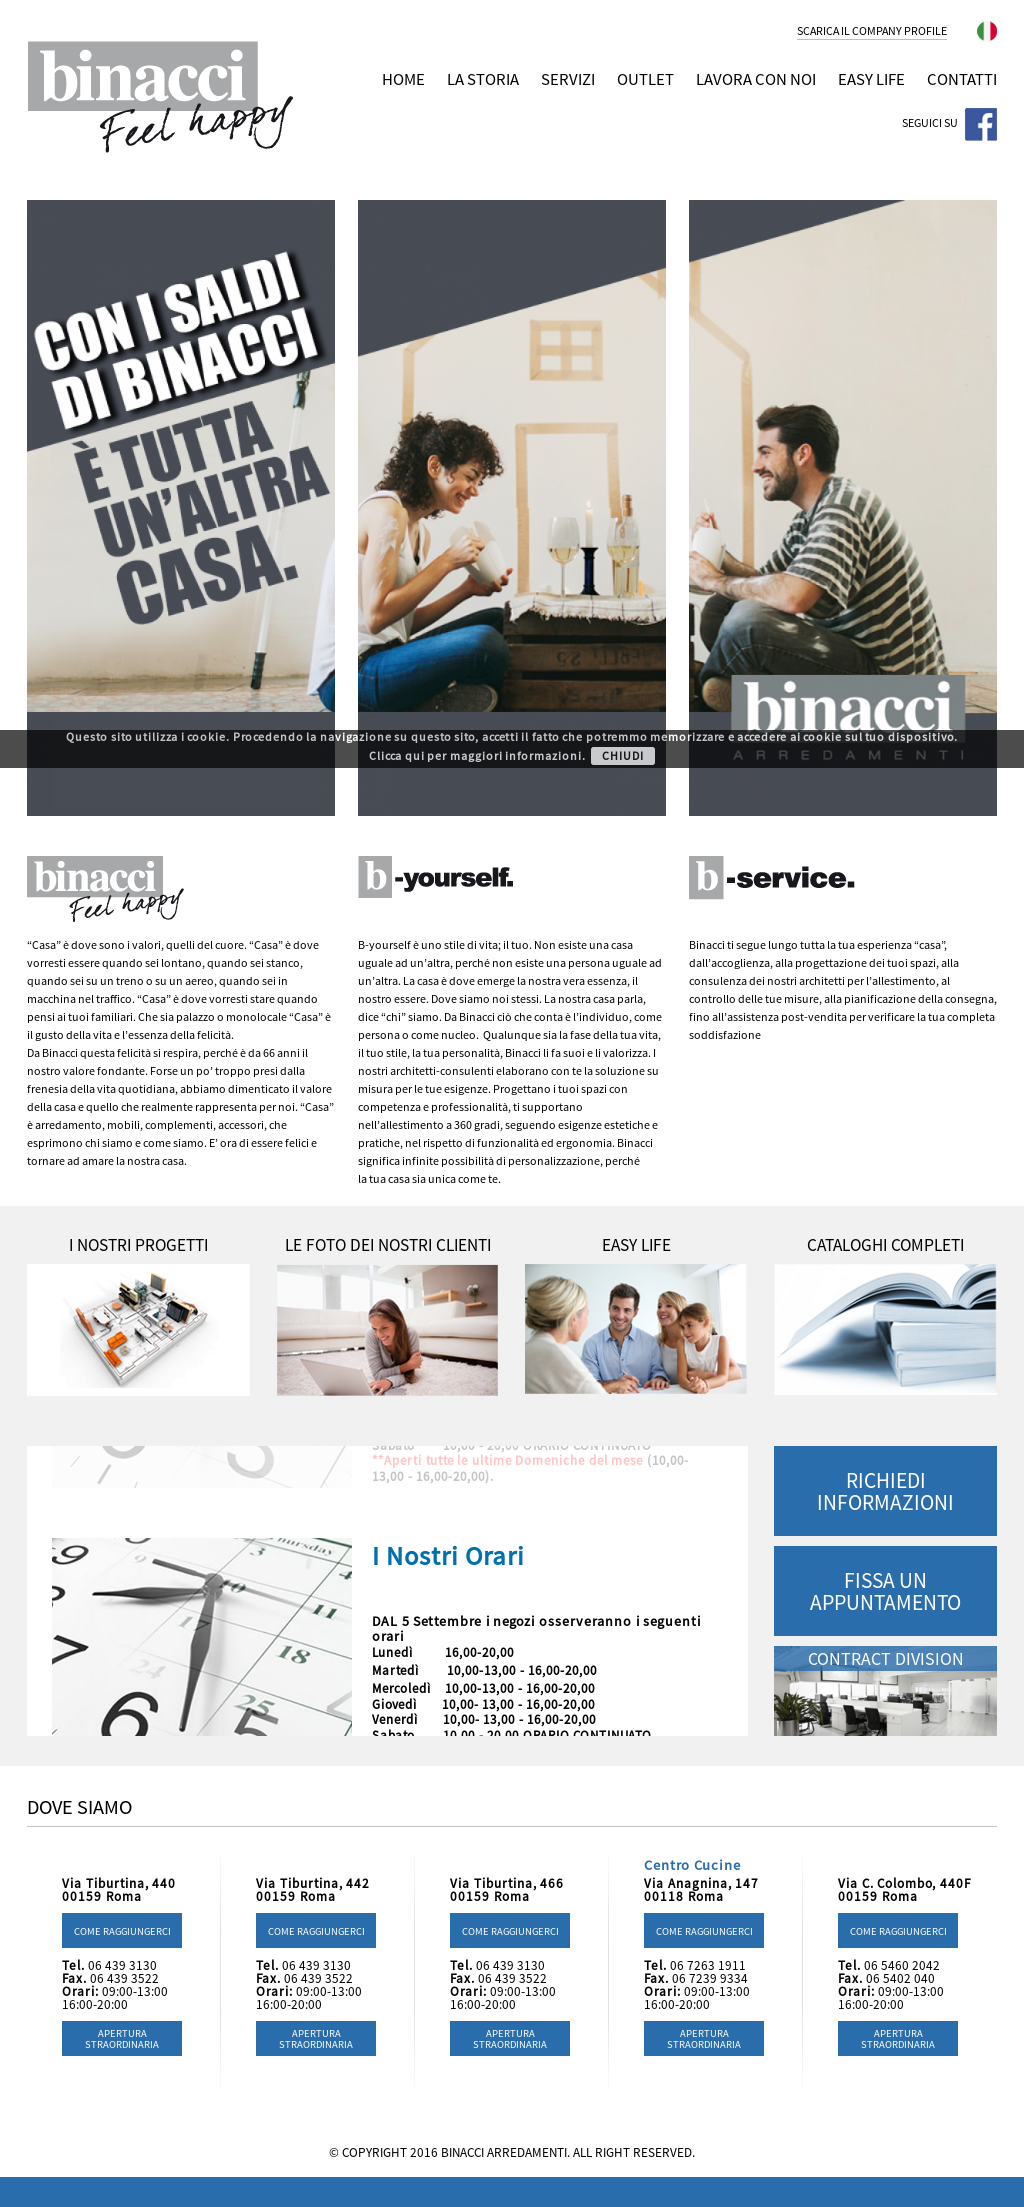 Binacci Arredamenti Srl Competitors, Revenue and Employees - Owler ...